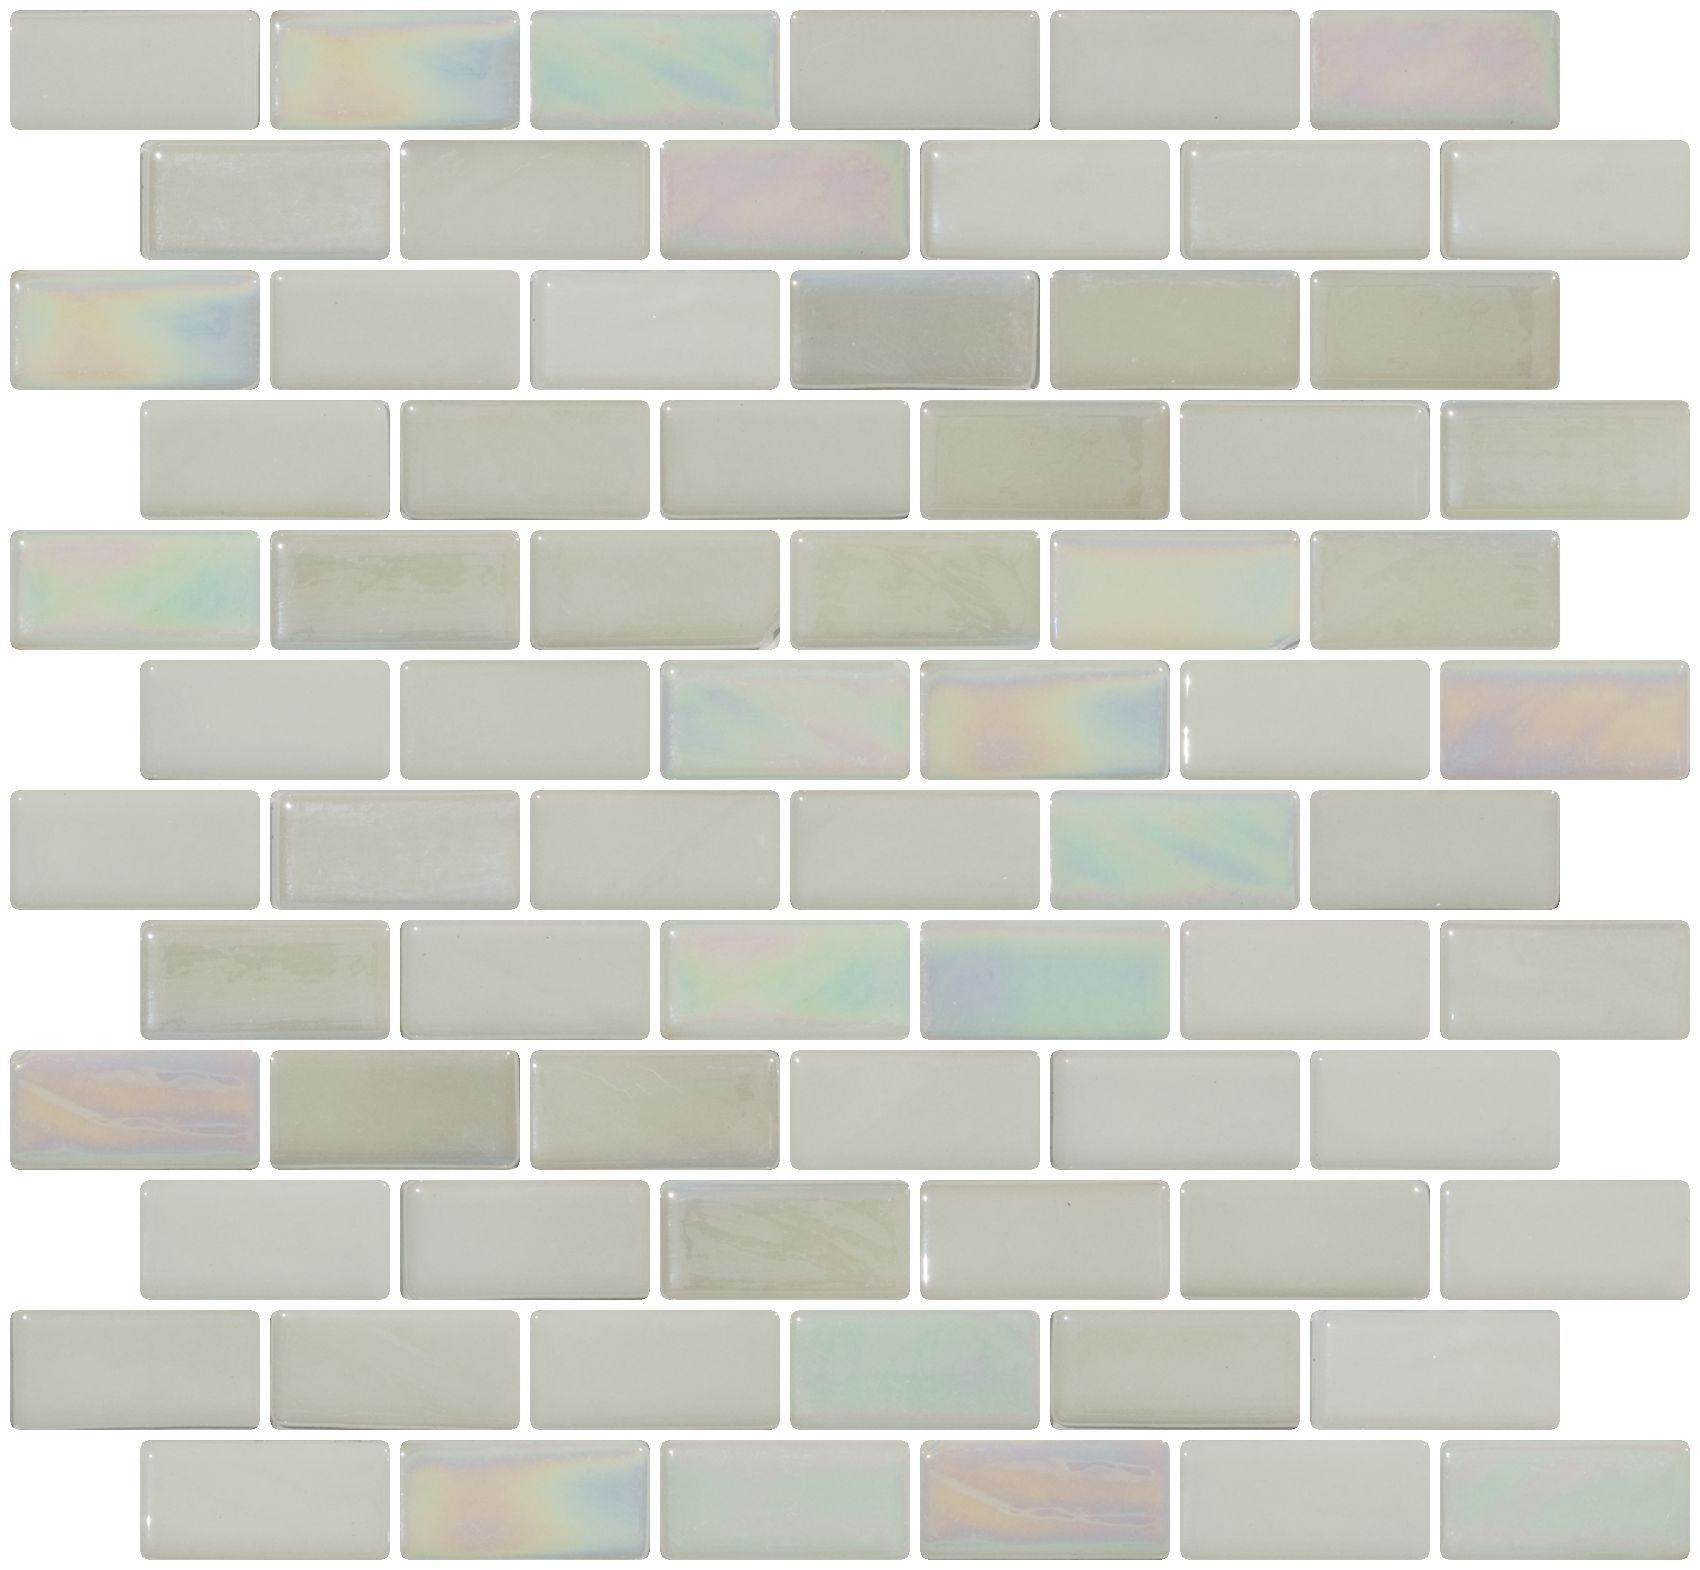 1x2 Inch Steam White Iridescent Recycled Subway Glass Tile RB | Pool ...